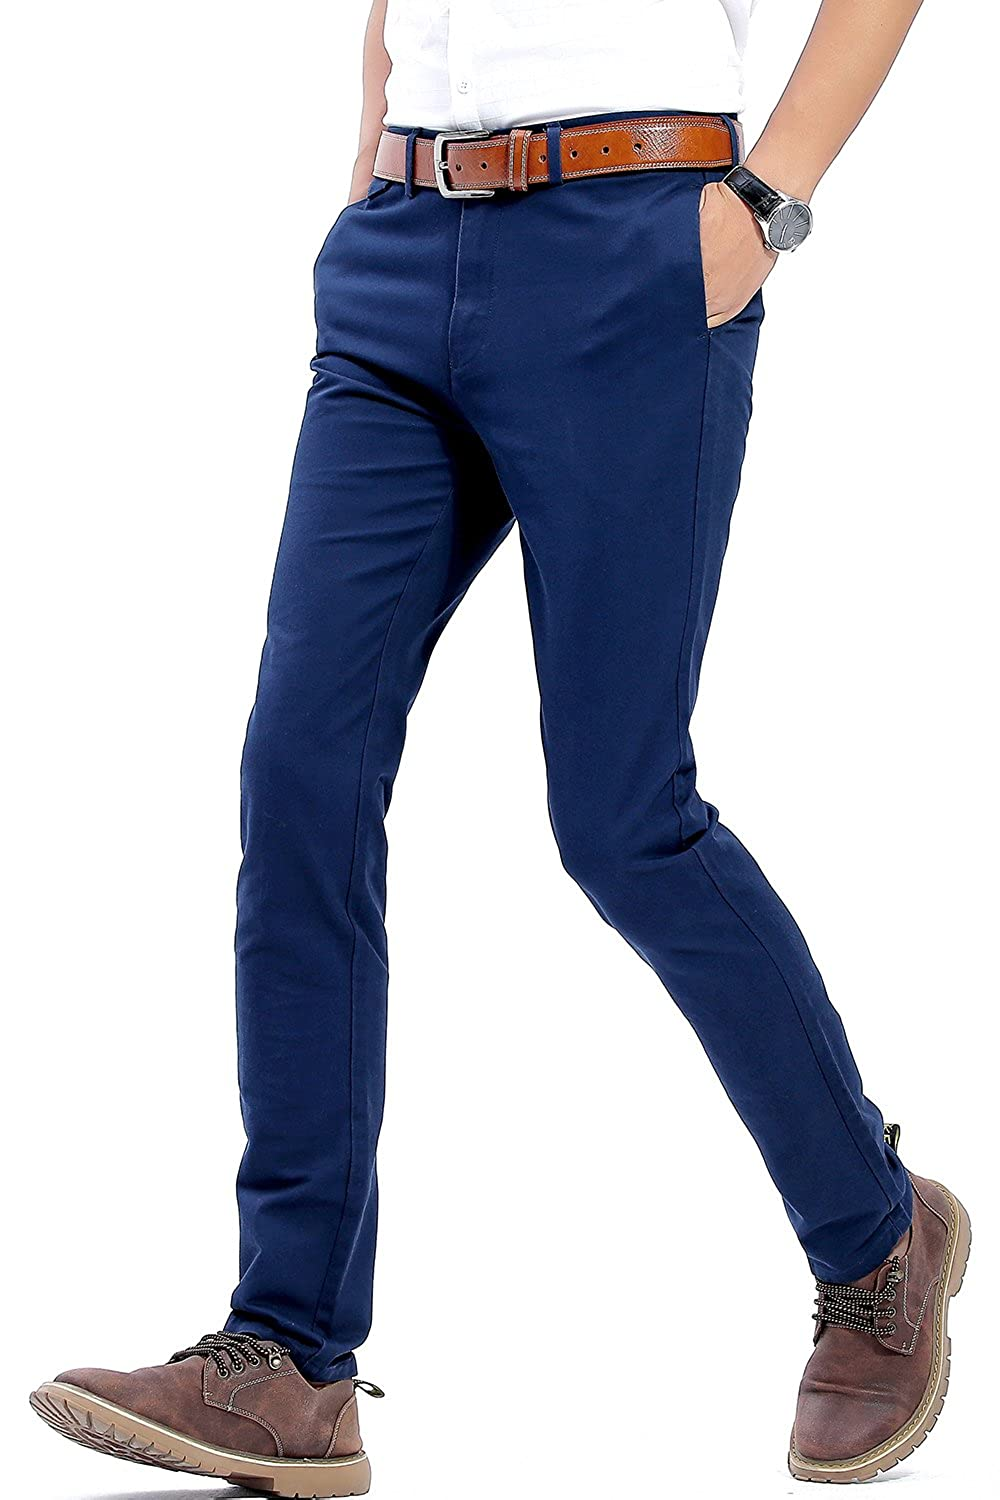 03f695dab81 FLY HAWK Mens Slim Fit Tapered Flat Front Casual Pants 100 % Cotton Work  Pants